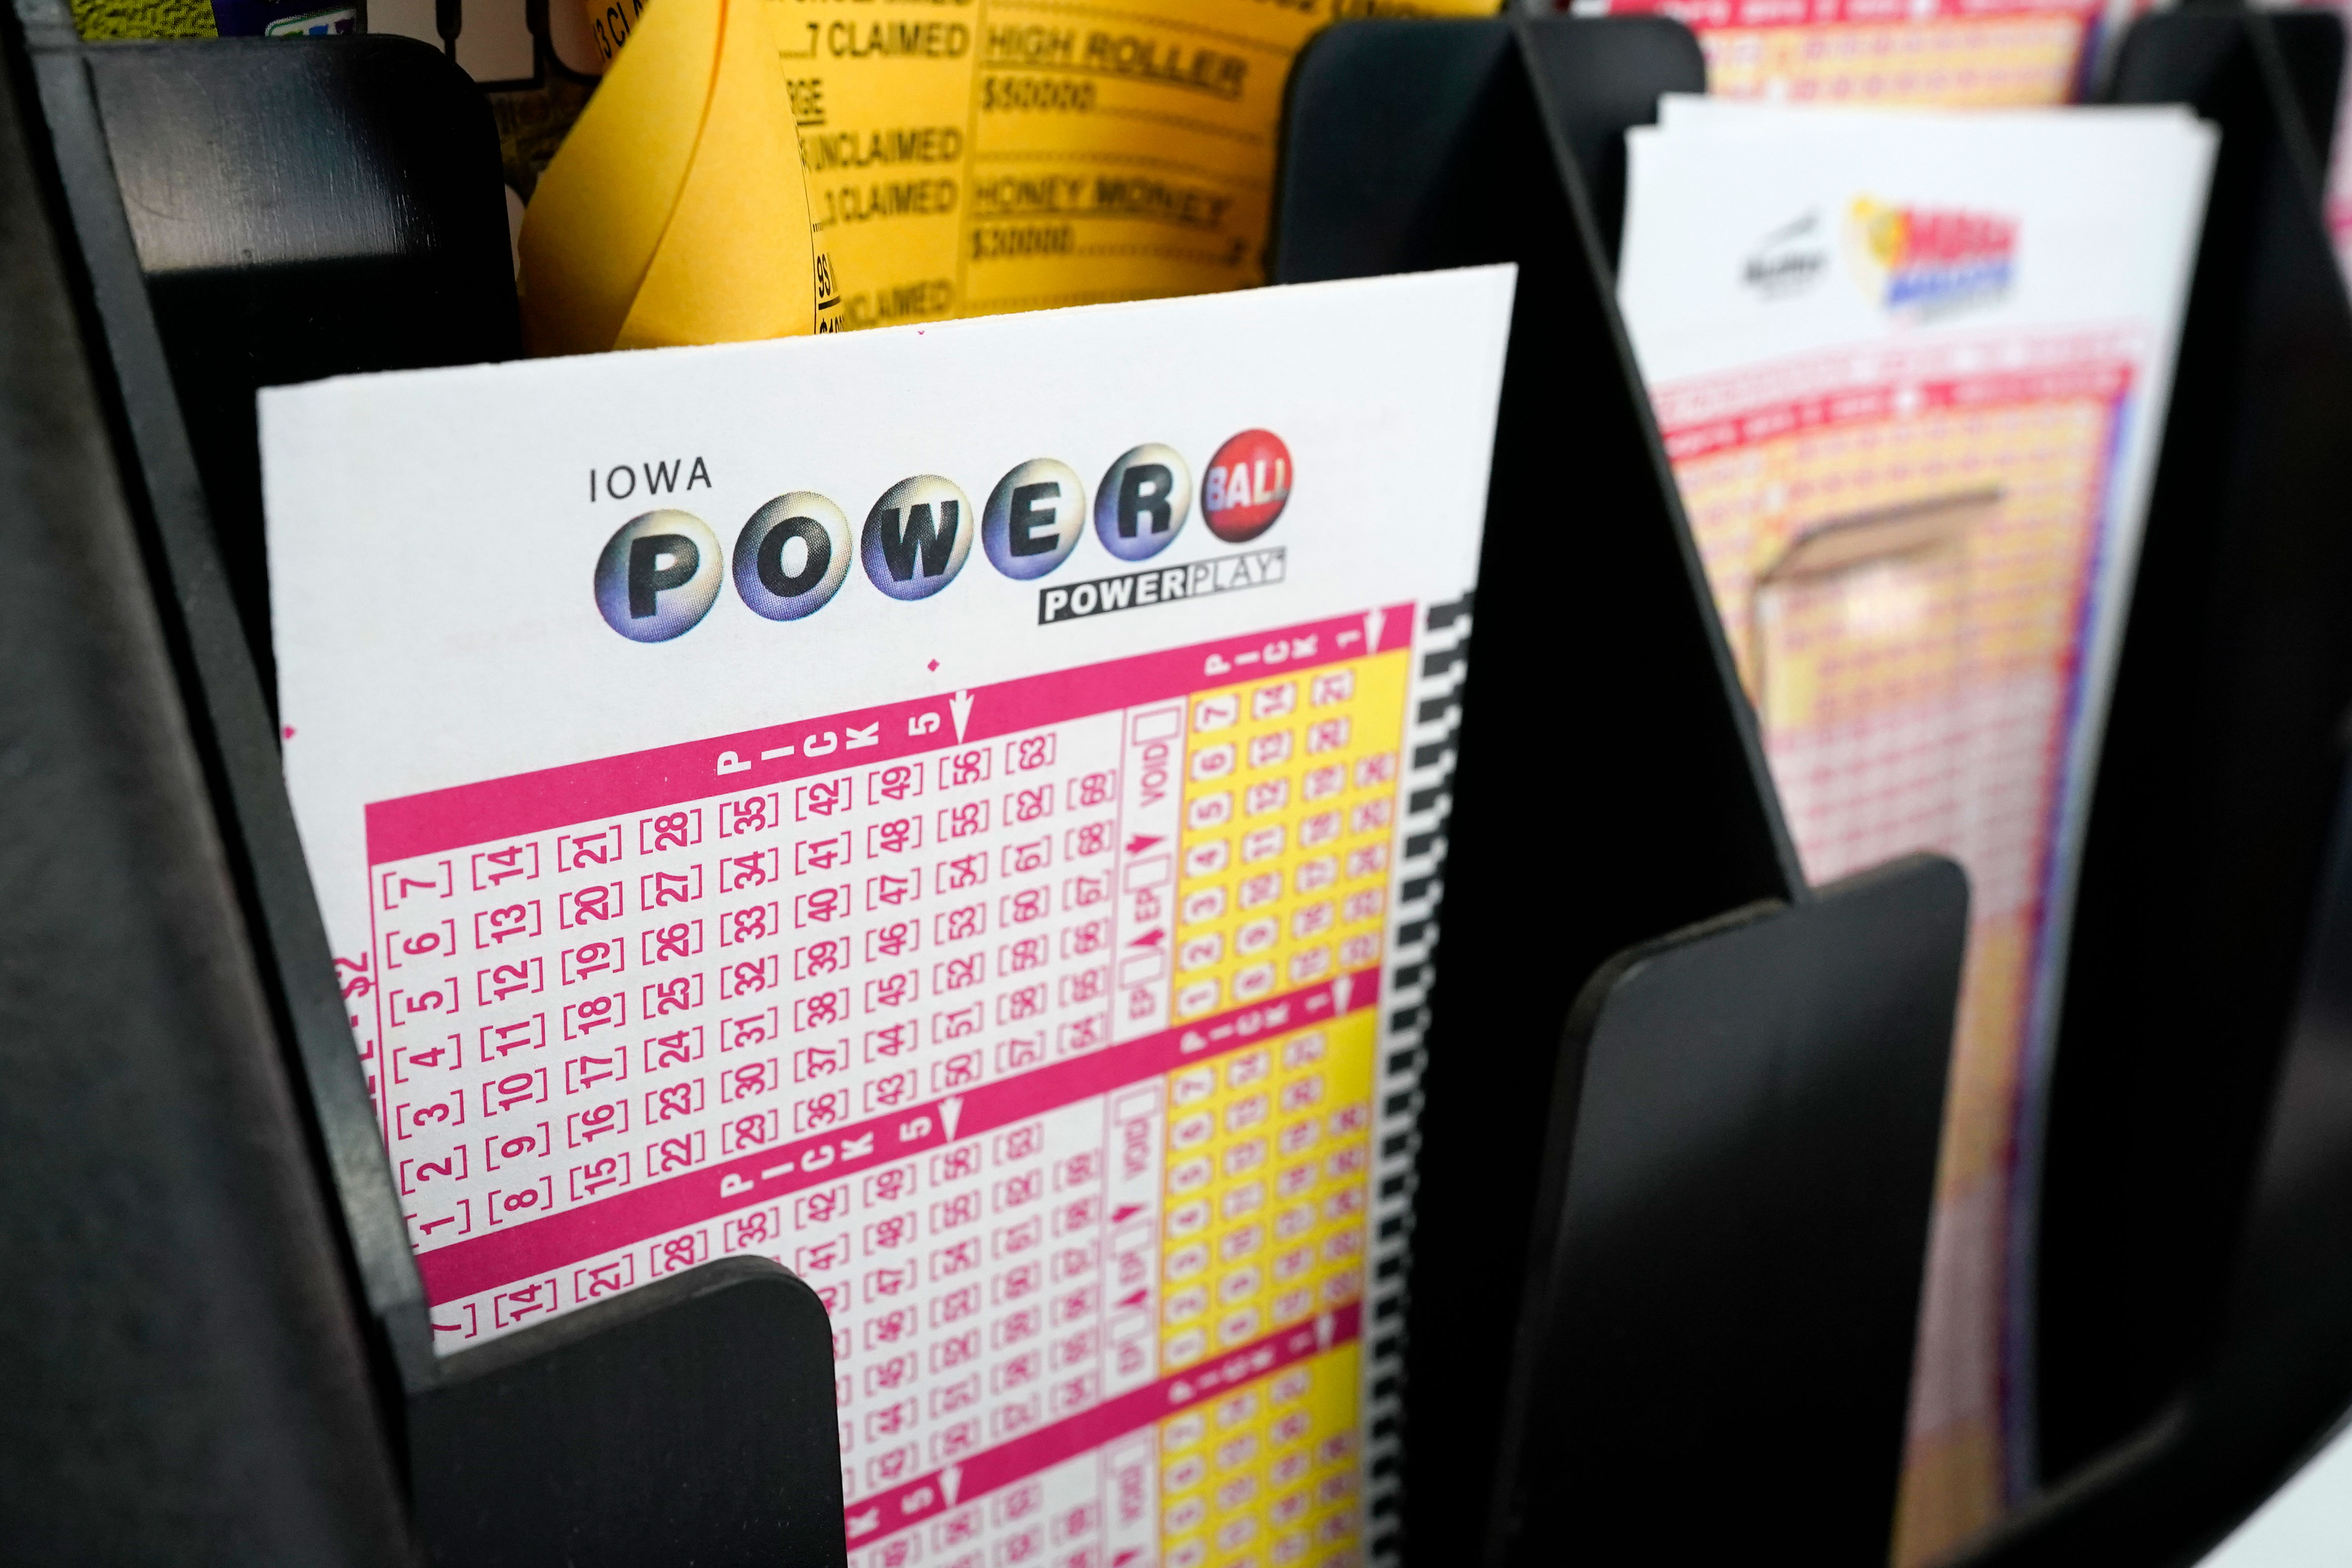 Powerball jackpot hits $730 million after no winner declared Saturday